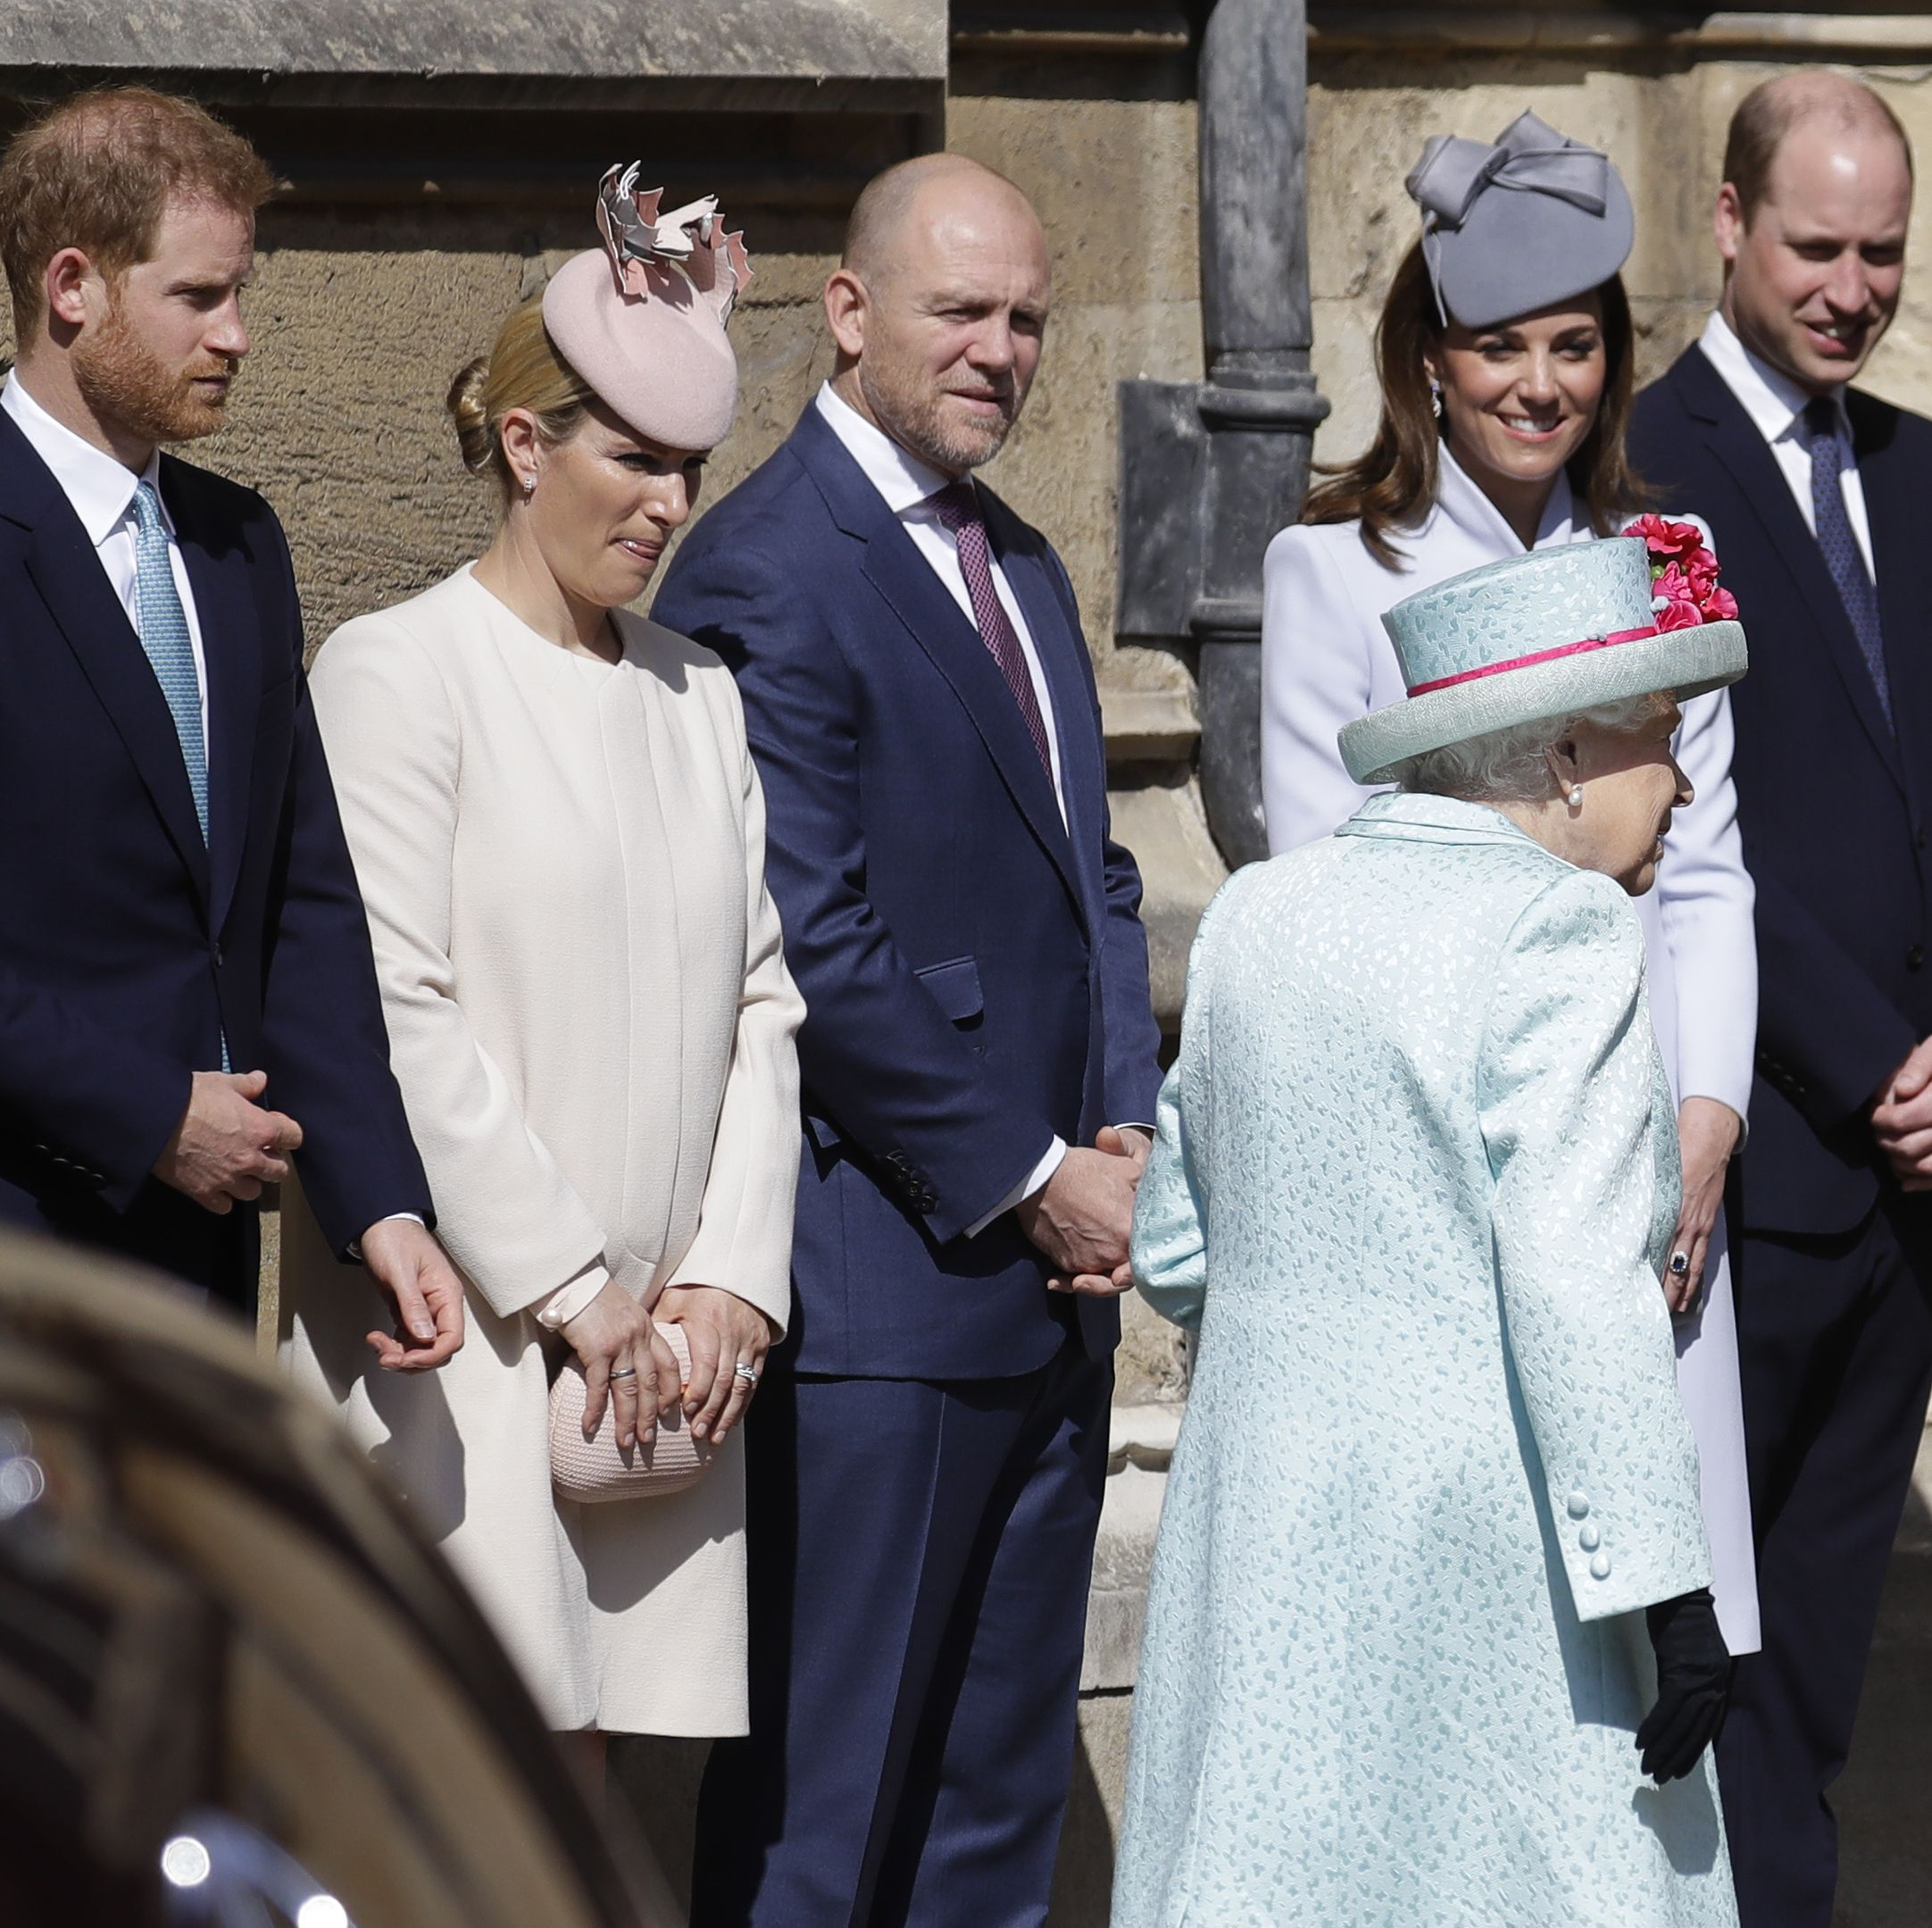 Mike Tindall reveals what goes on in the royal family's WhatsApp group